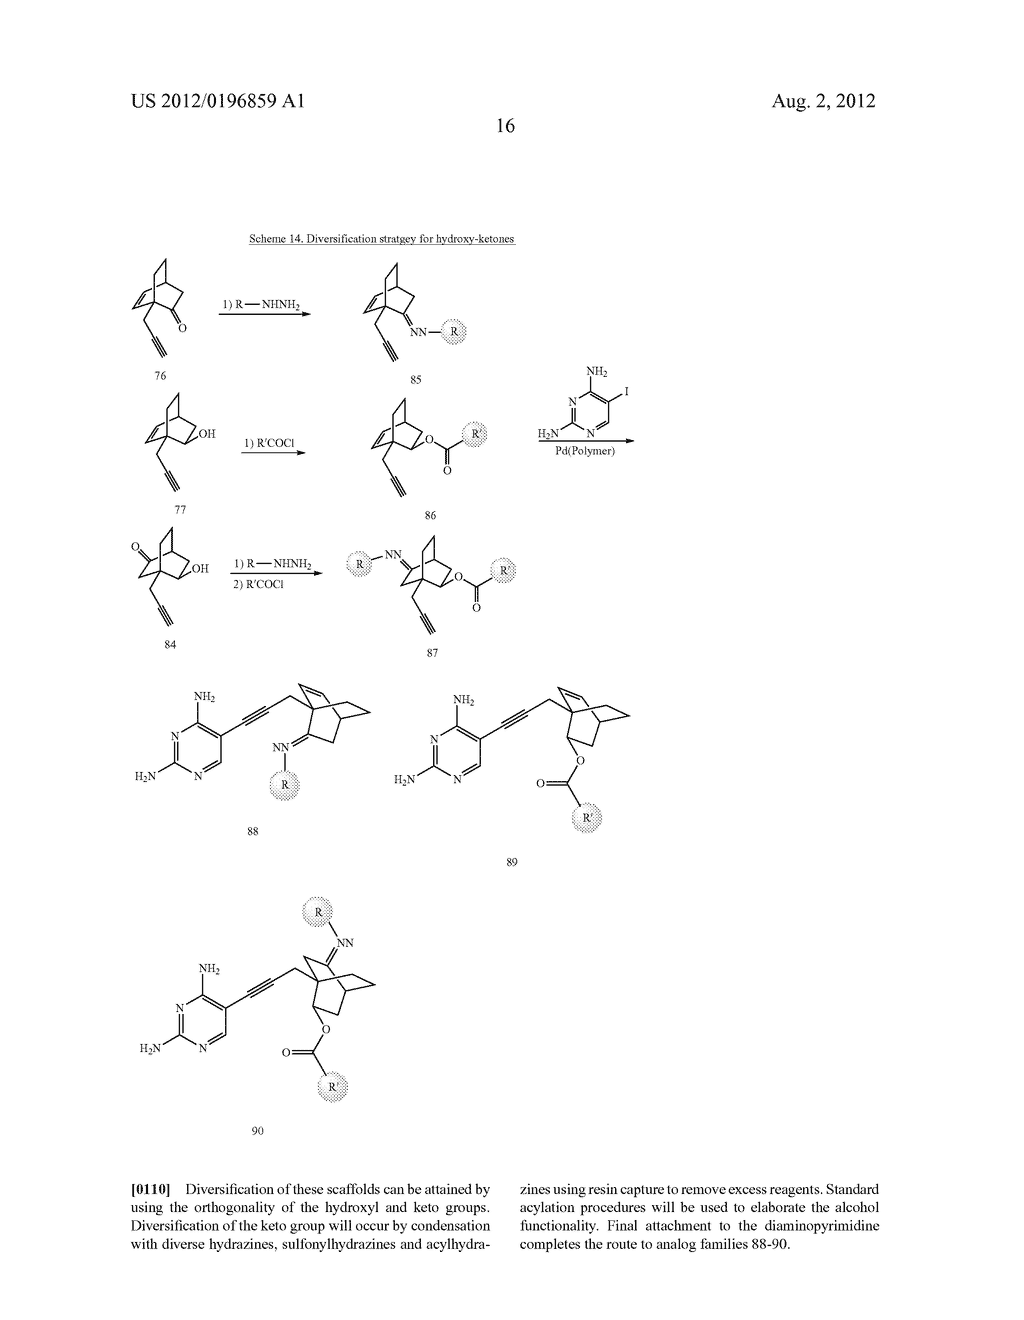 HETEROCYCLIC ANALOGS OF PROPARGYL-LINKED INHIBITORS OF DIHYDROFOLATE     REDUCTASE - diagram, schematic, and image 32